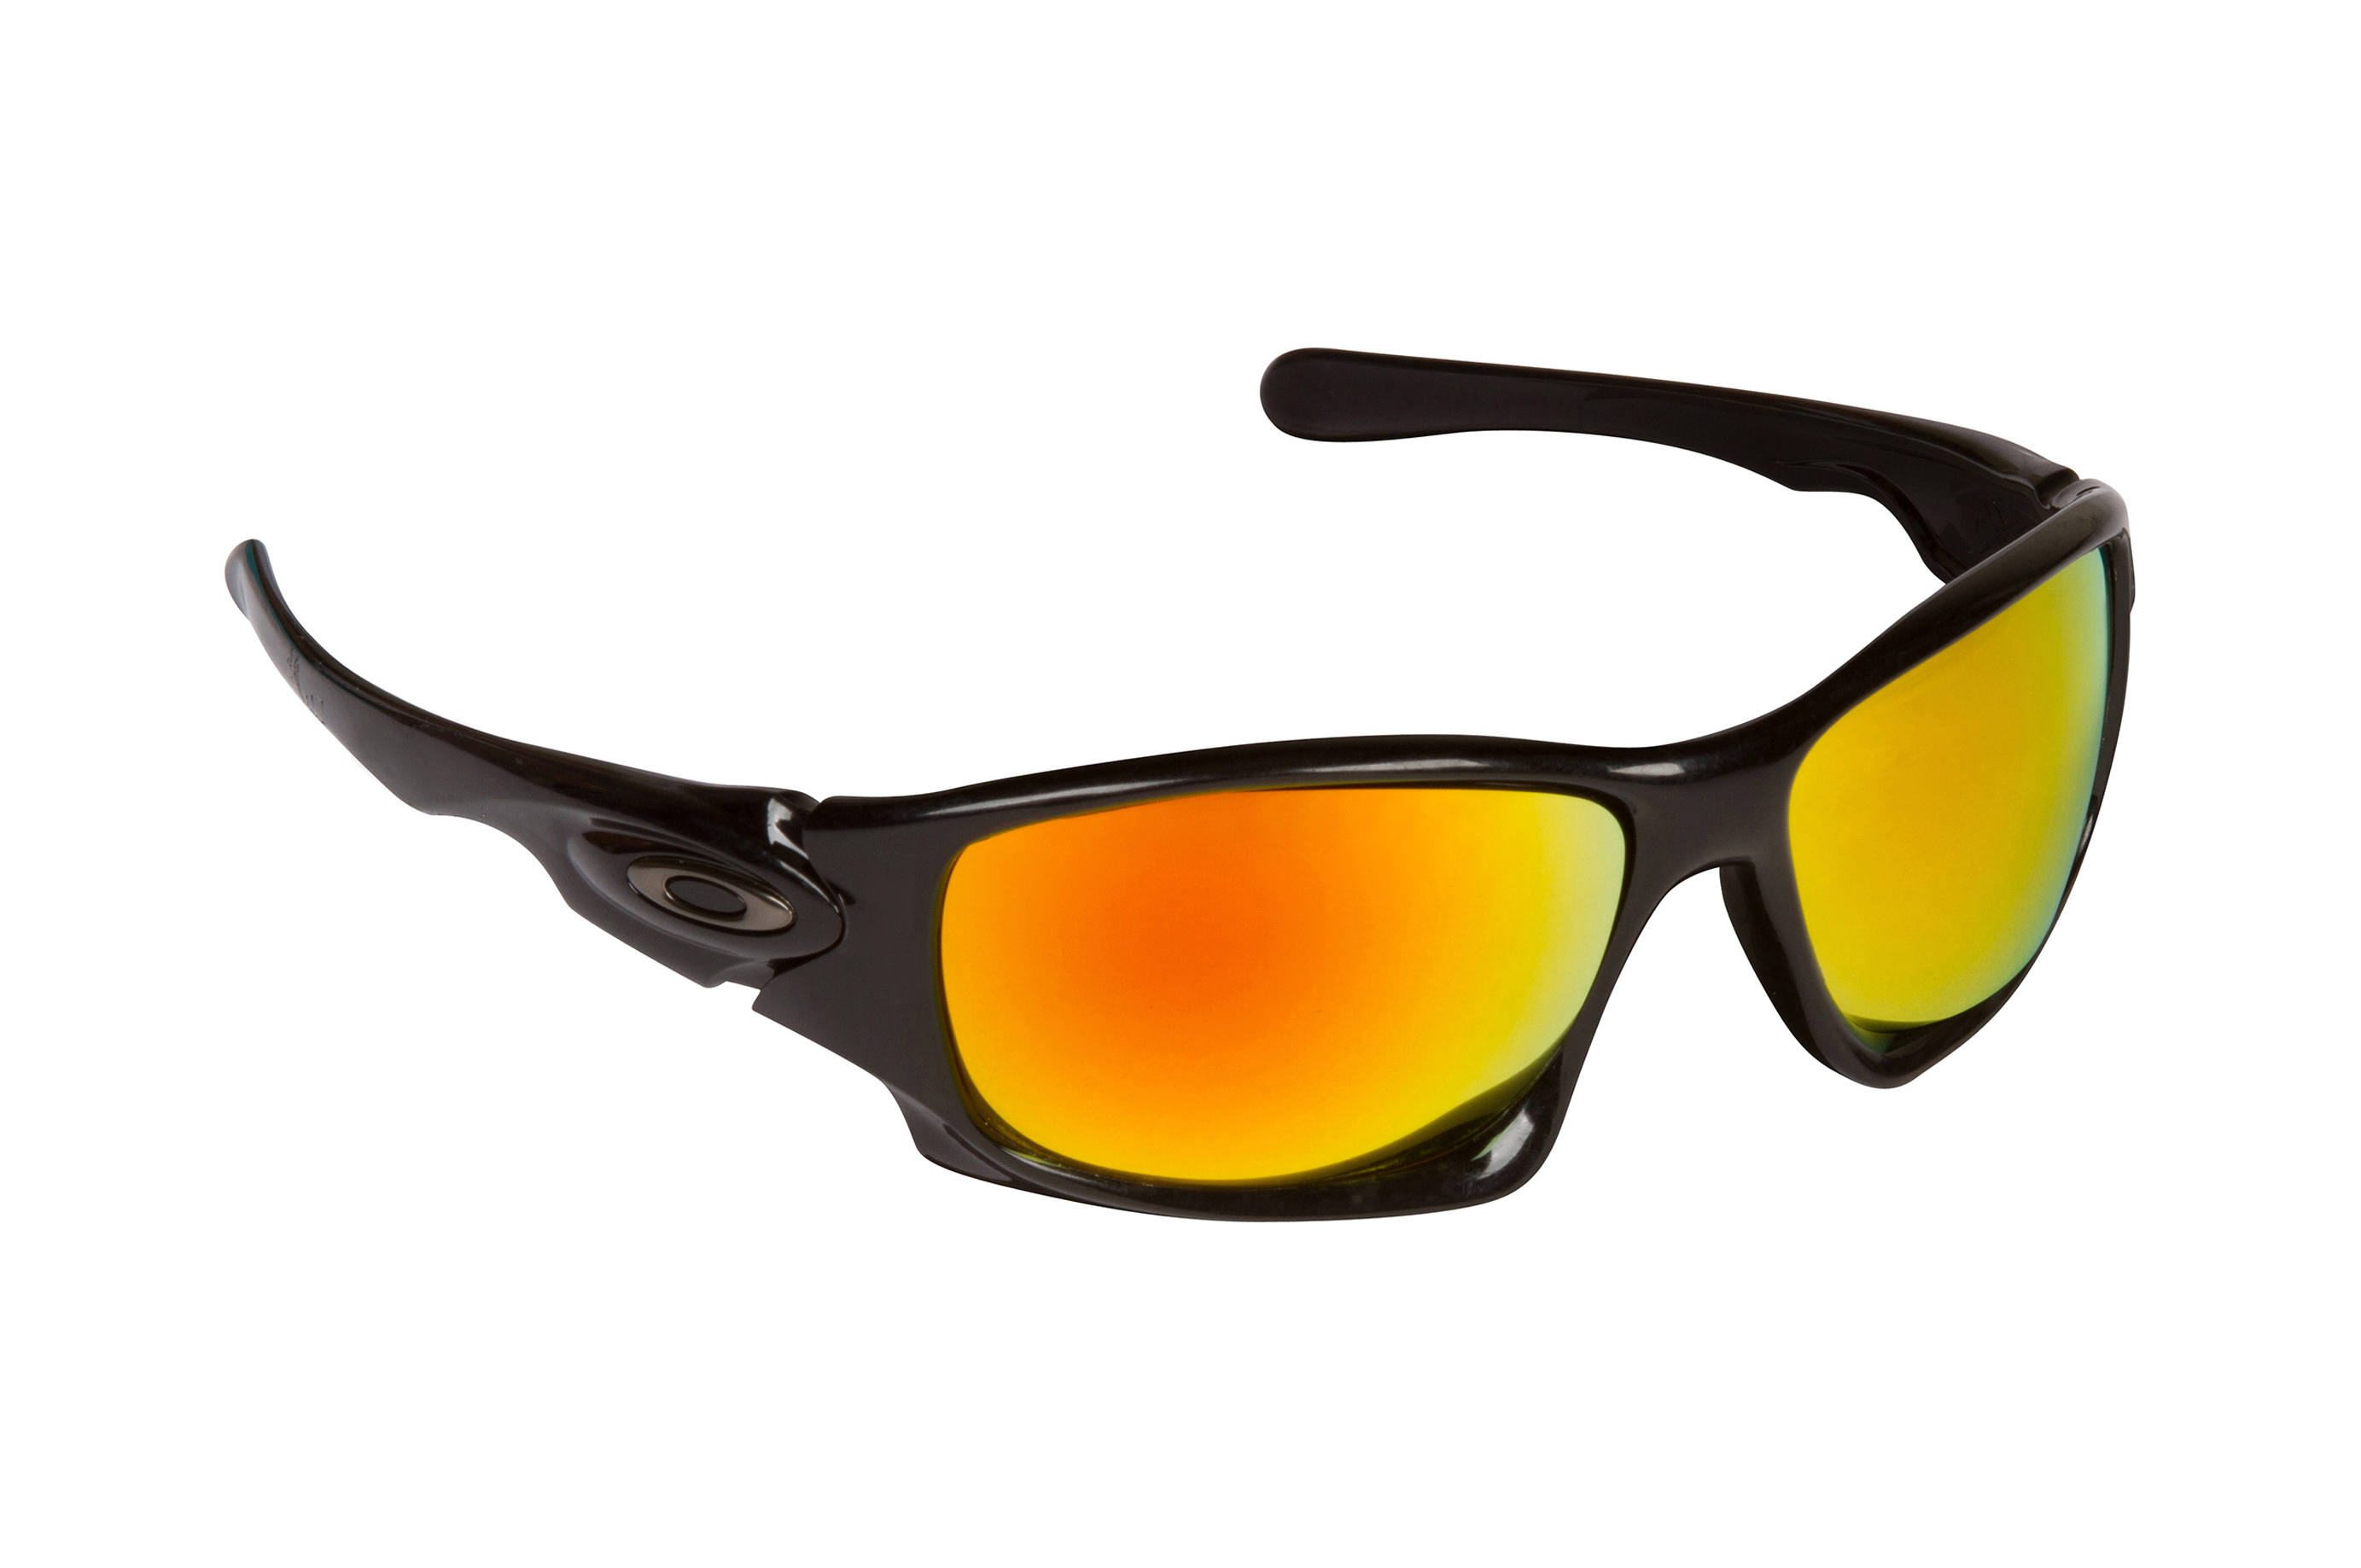 4dcf5ca9593 Ten X Replacement Lenses by SEEK OPTICS to fit OAKLEY Sunglasses